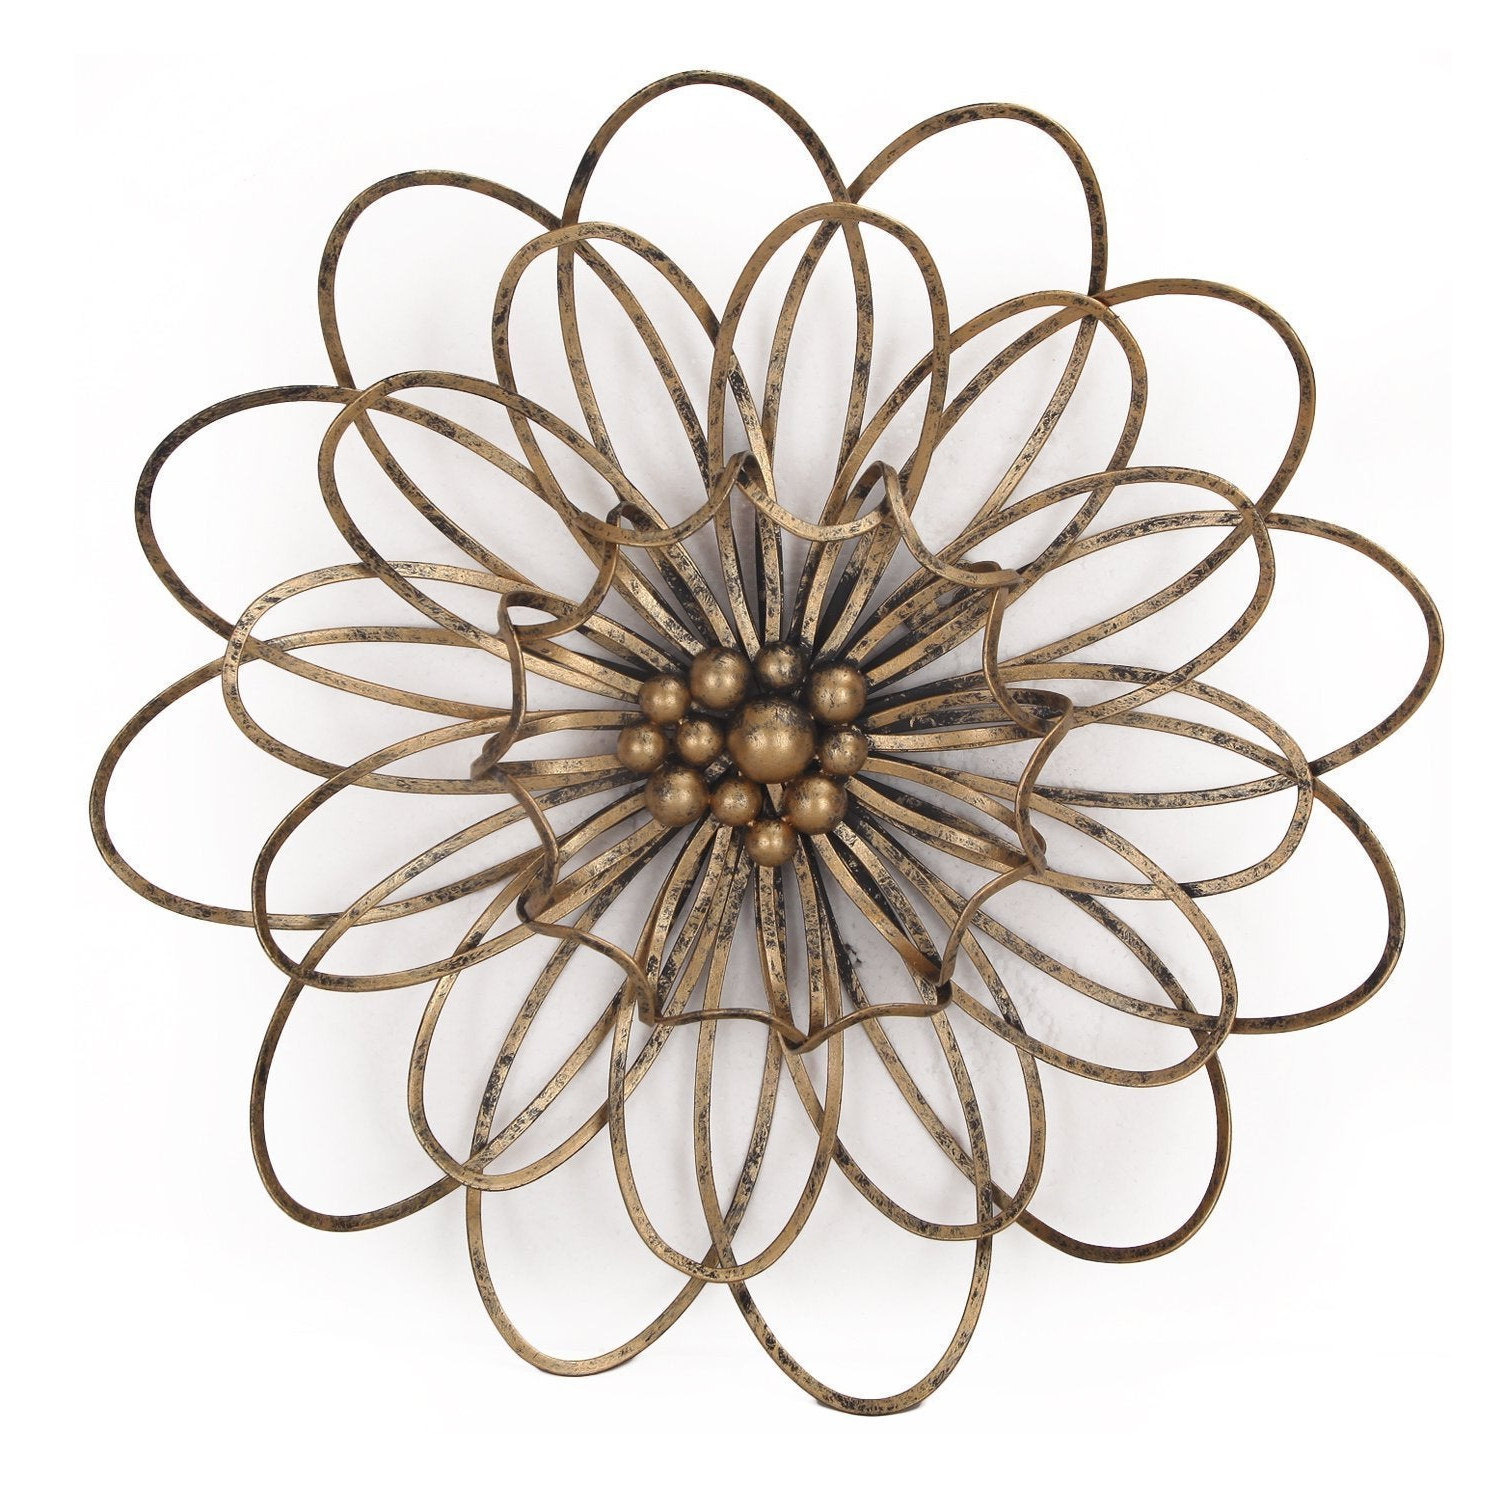 Shop Flower Urban Design Metal Wall Decor – Free Shipping Today Intended For Widely Used Flower Urban Design Metal Wall Decor (View 16 of 20)